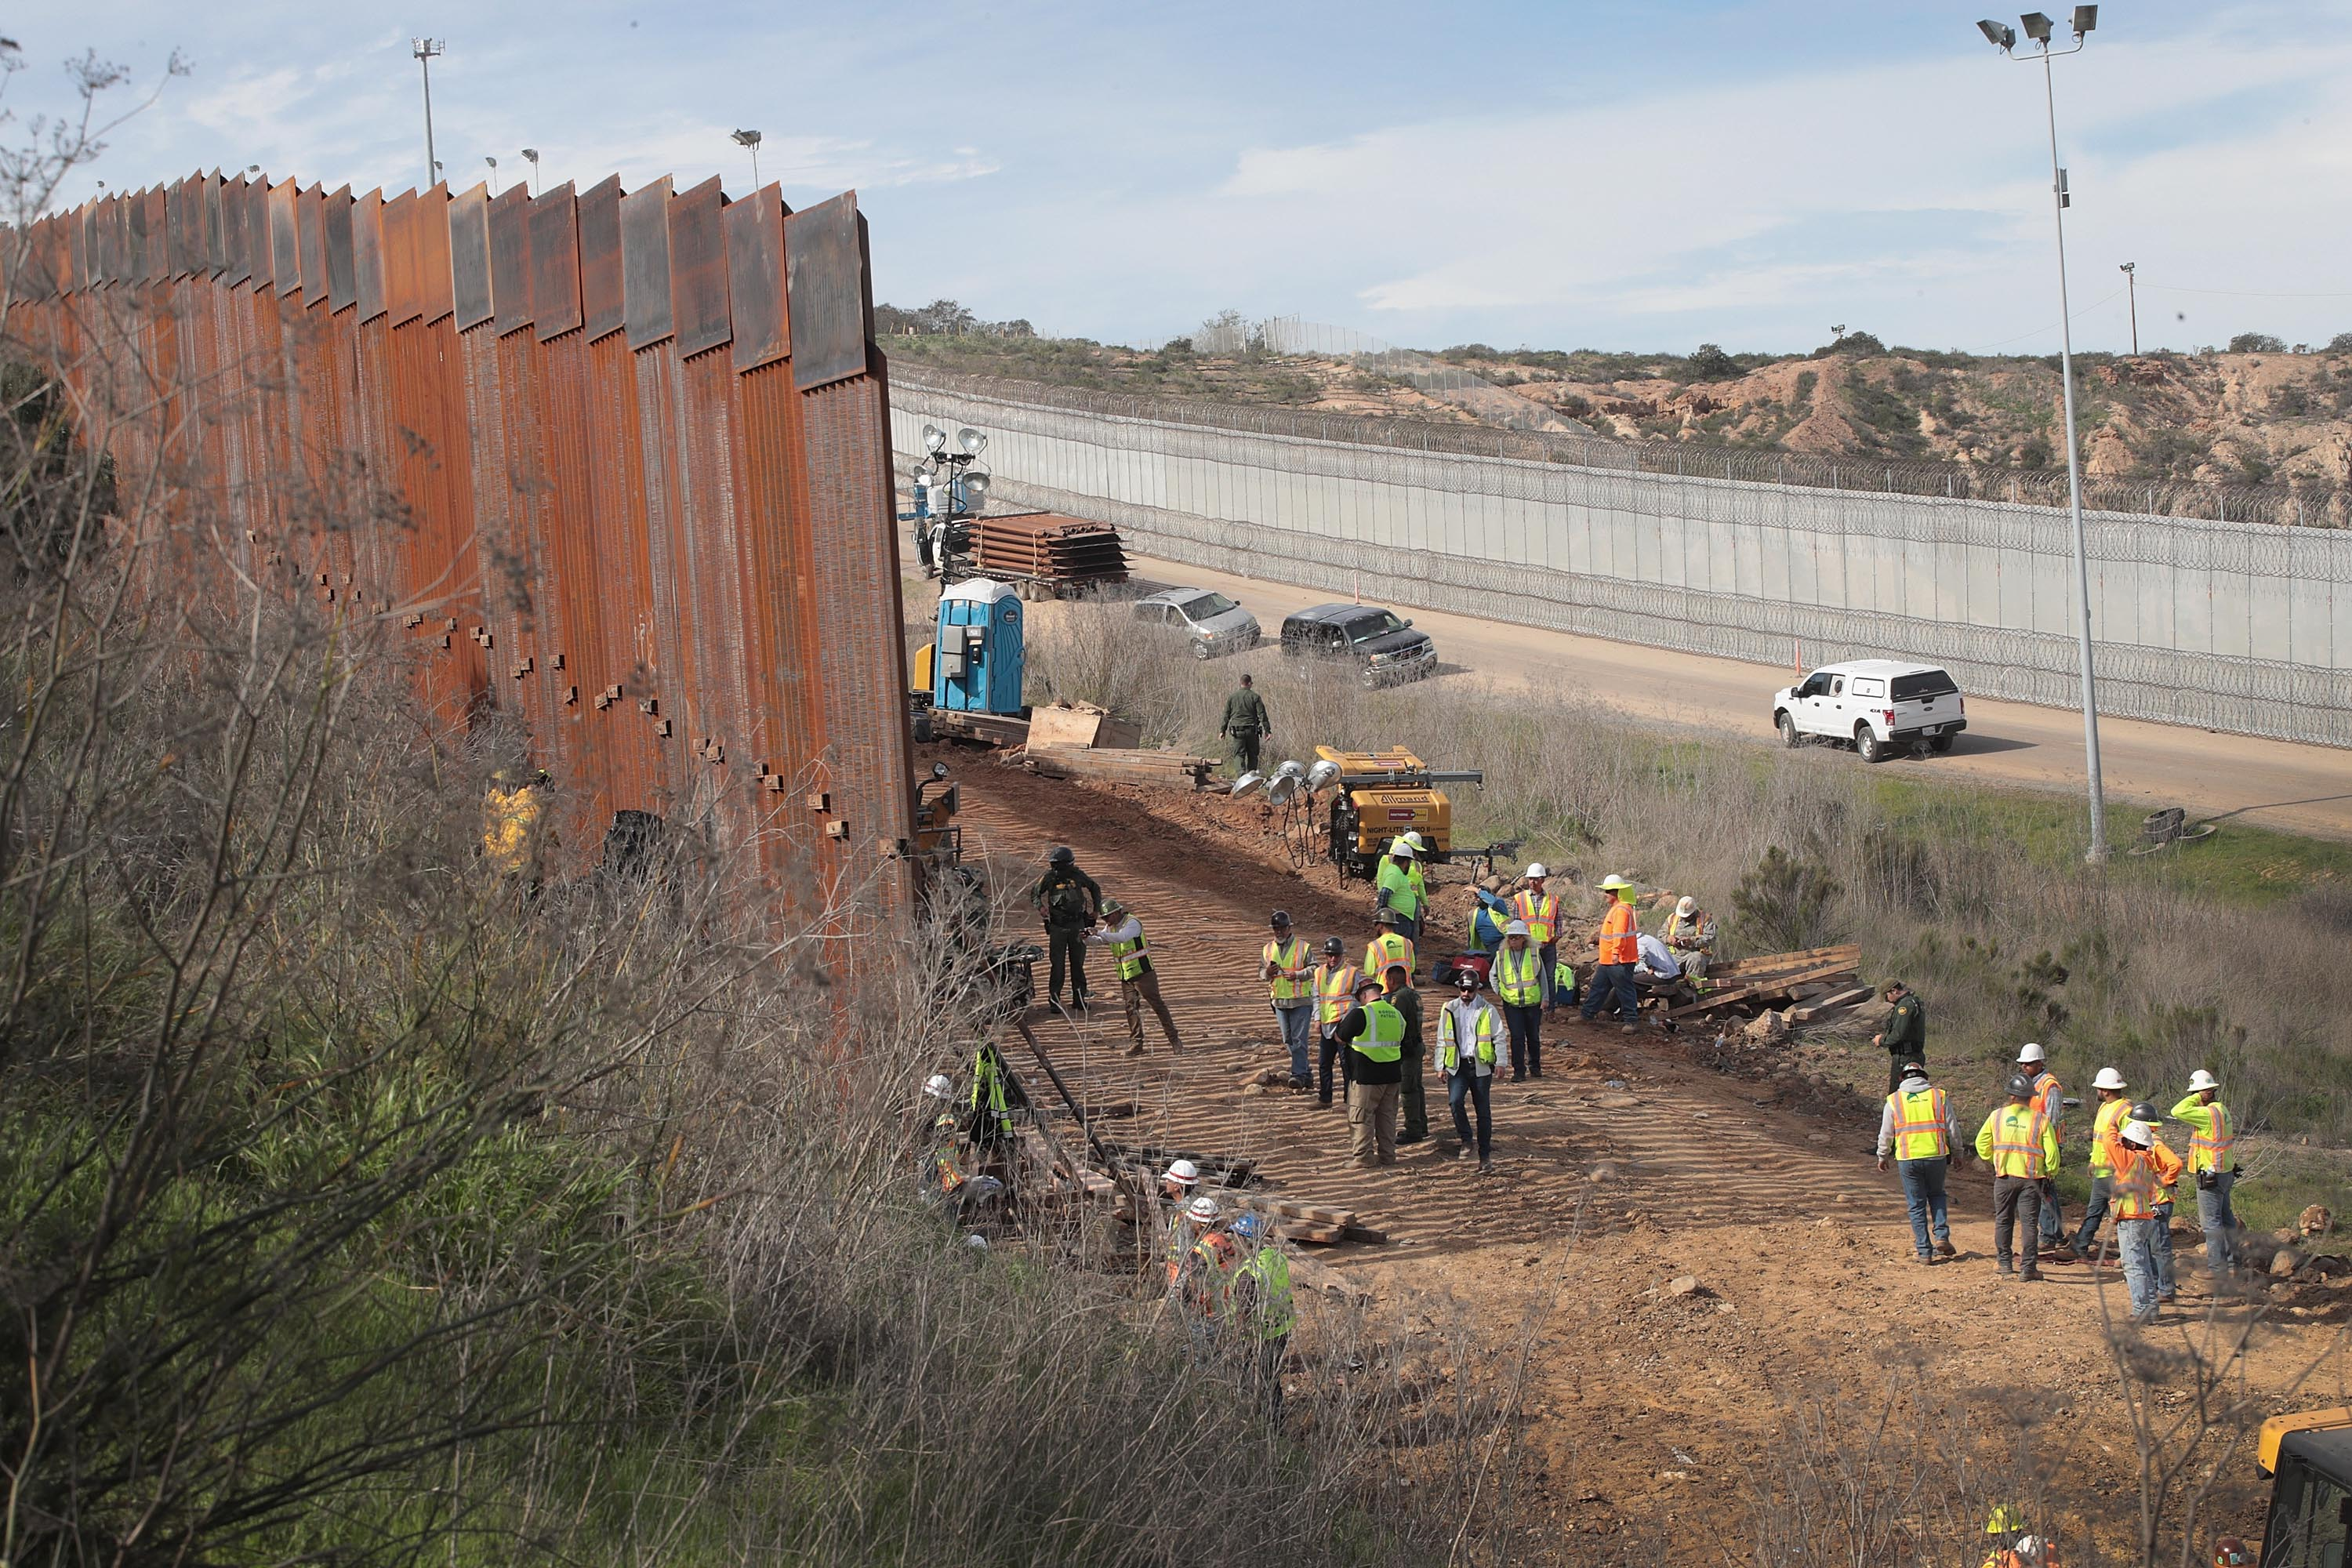 A section of border wall is constructed on the U.S. side of the border on January 28, 2019 in Tijuana, Mexico. (Photo by Scott Olson/Getty Images)